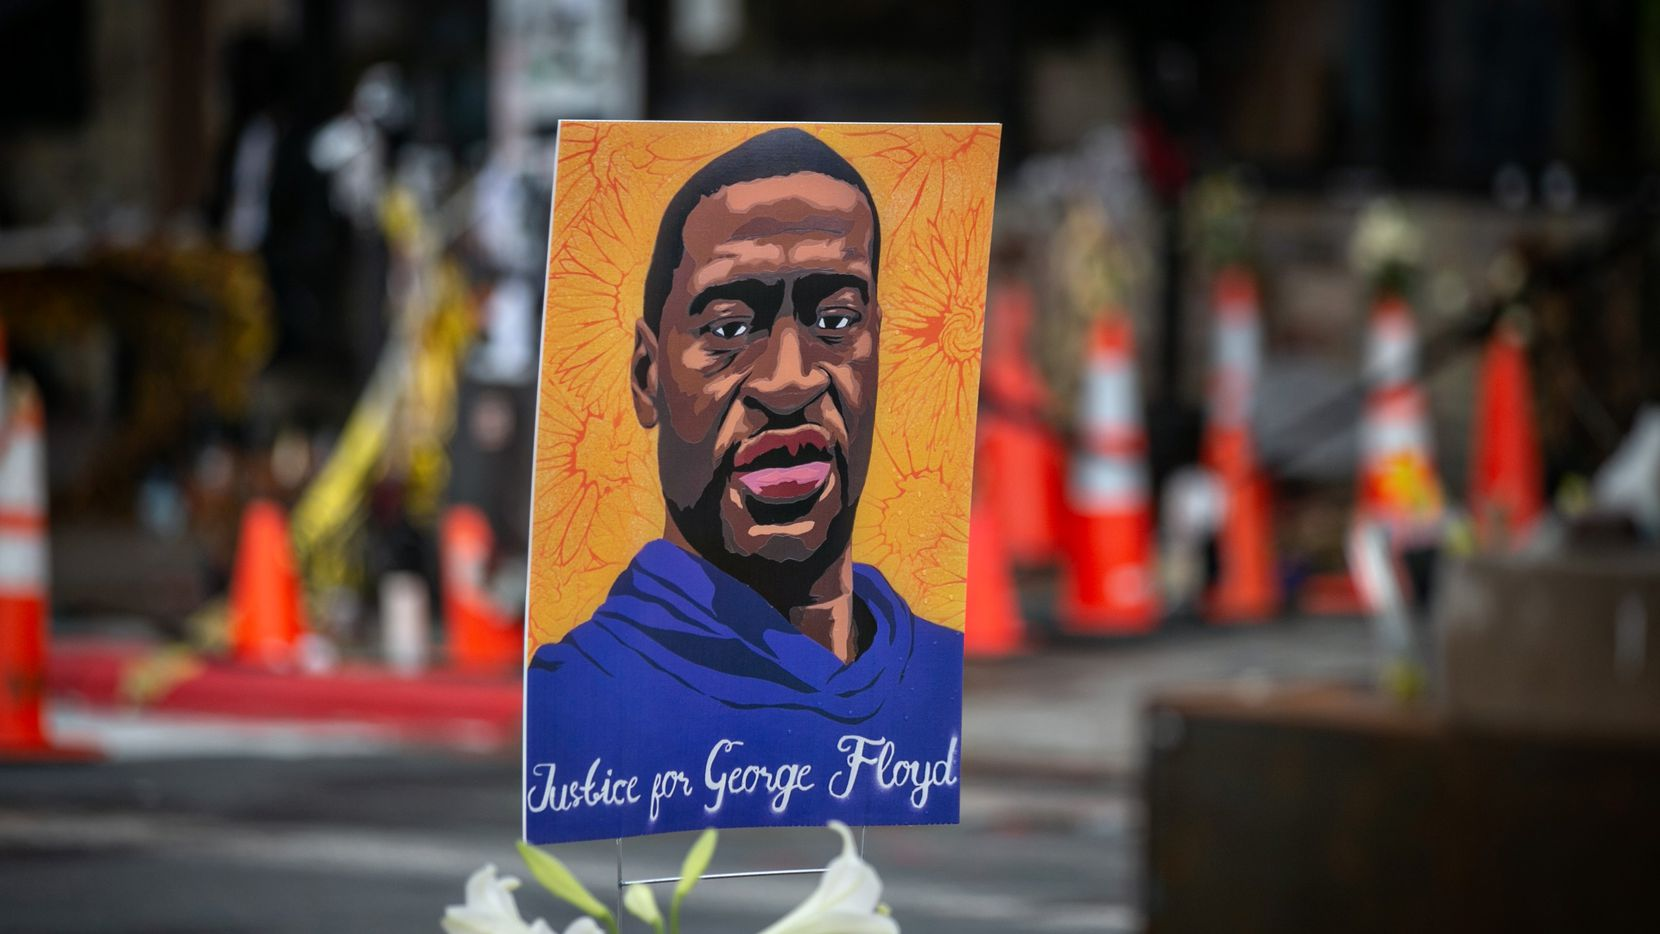 Images of George Floyd have surrounded the Cup Foods store in Minneapolis outside of which he died under an officer's knee last year.